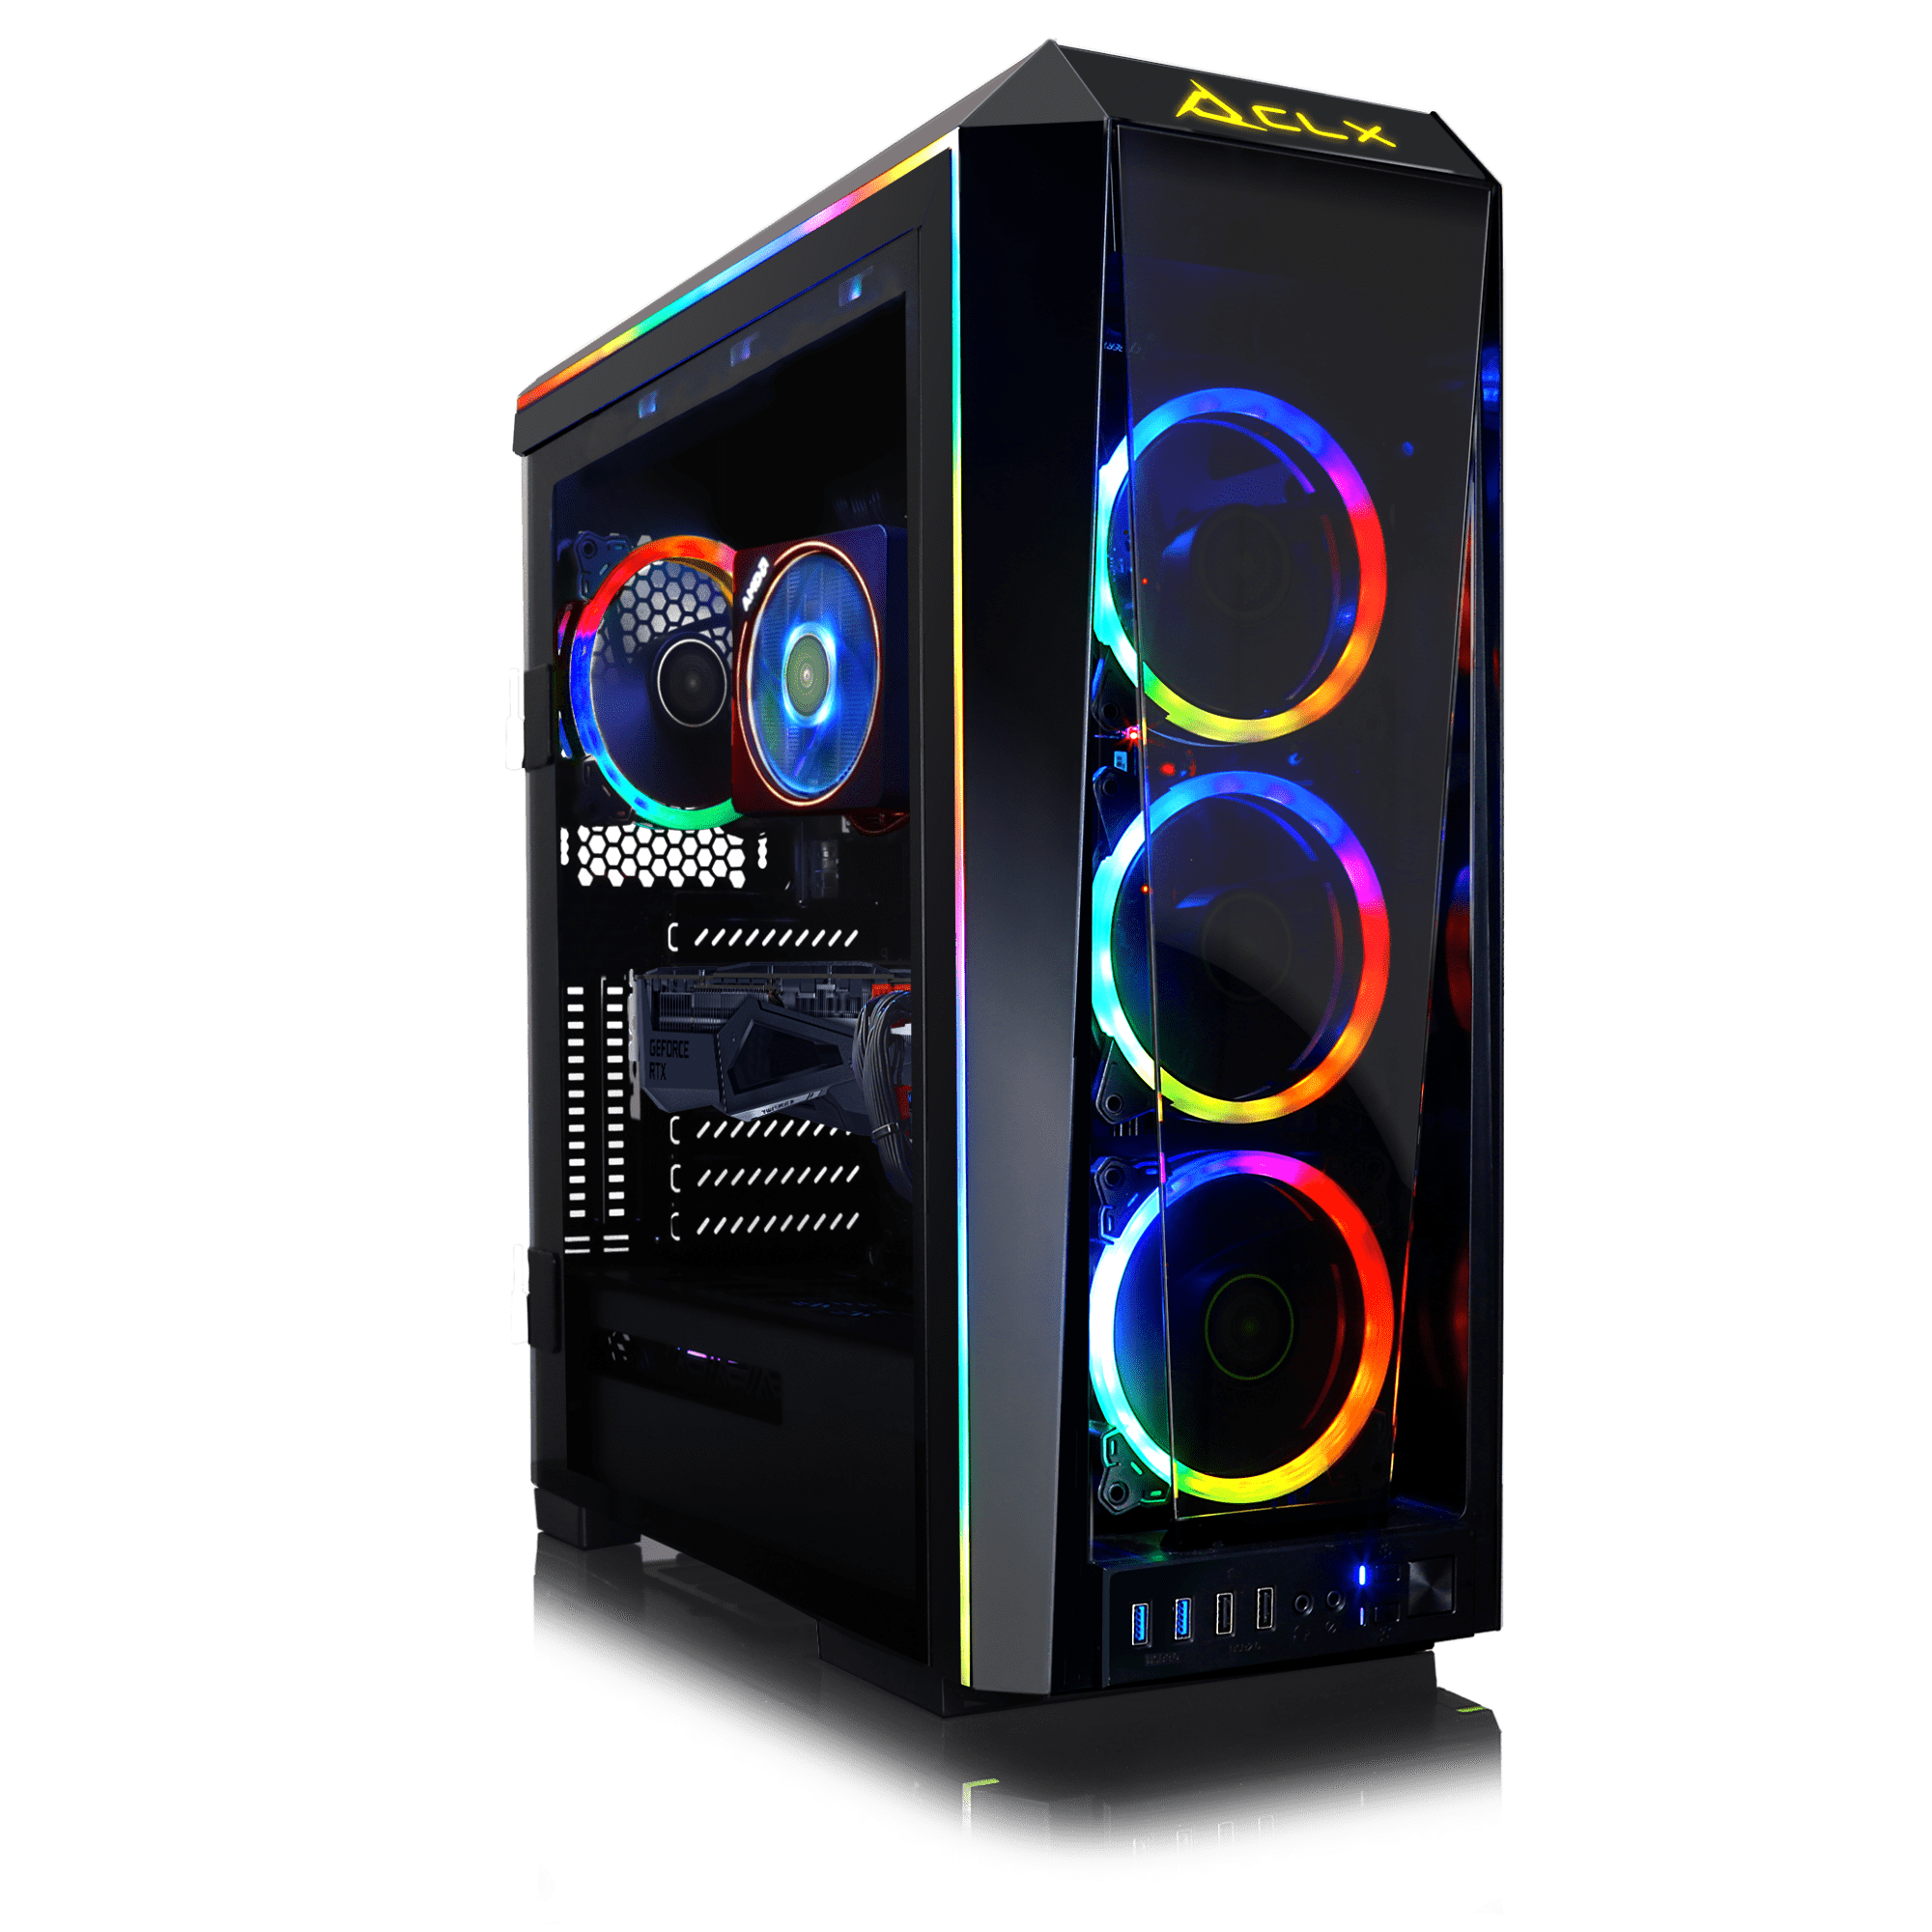 Clx Set Vr Ready Gaming Desktop W Amd Ryzen 7 3800x 8 Core 3 9ghz Processor 32gb Ddr4 Memory Nvidia Geforce Rtx 2070 Super 8gb Graphics 1 Tb Ssd 3 Tb Hdd Wifi Windows 10